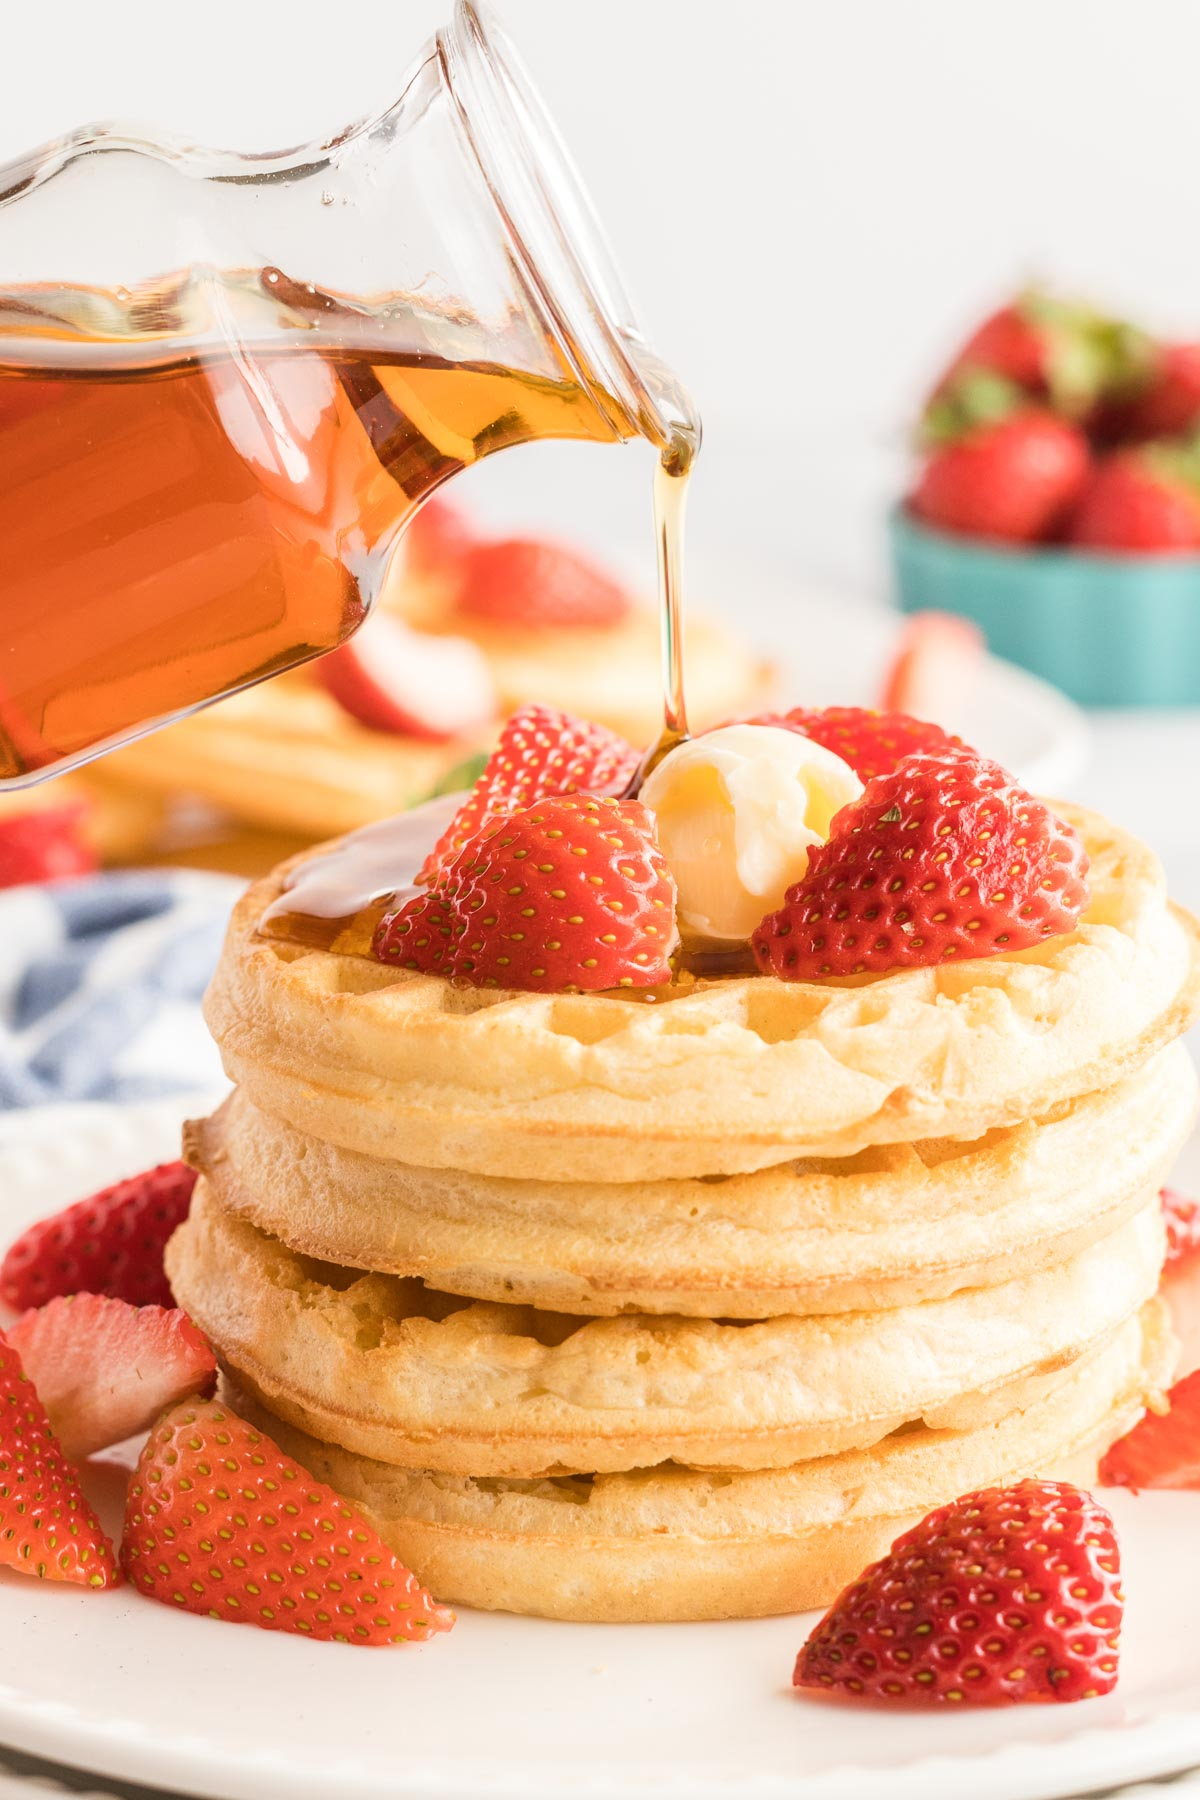 Four waffles in a stack with strawberries a jar of maple syrup being drizzled on top.